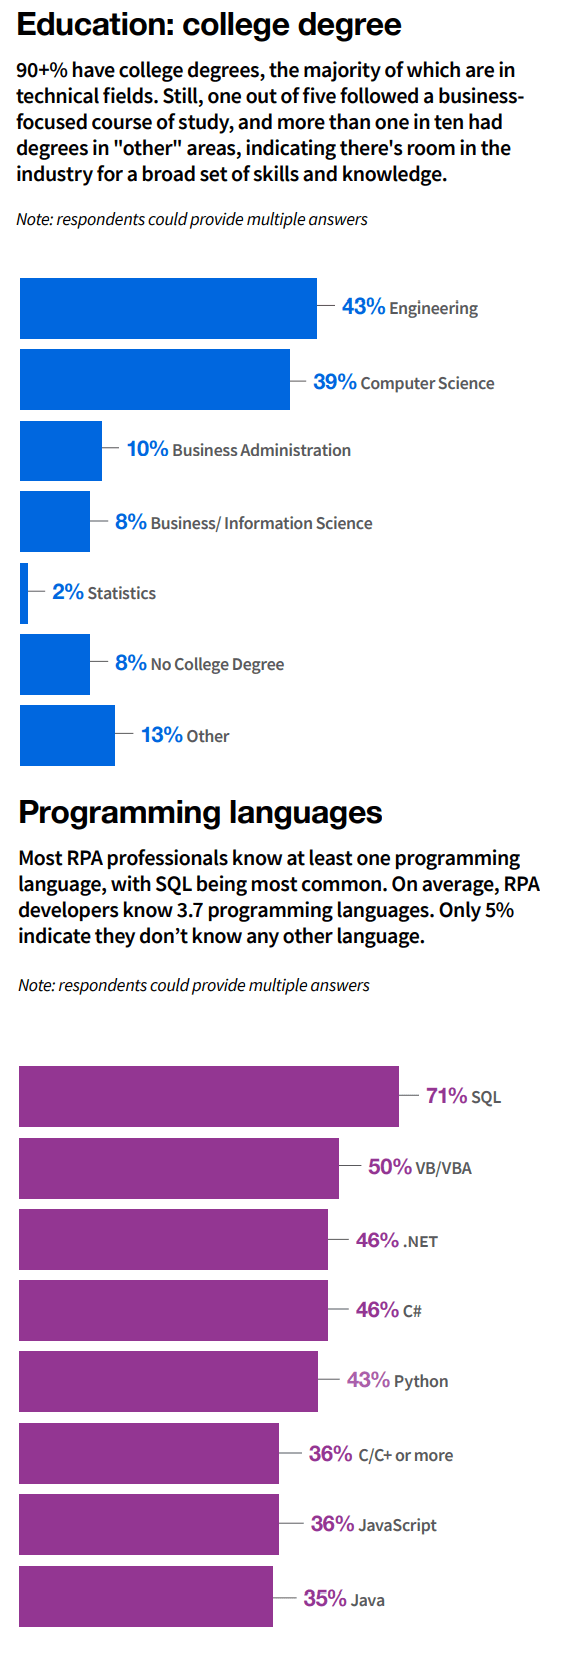 UiPath_2020 State of Dev Education and Programming Languages